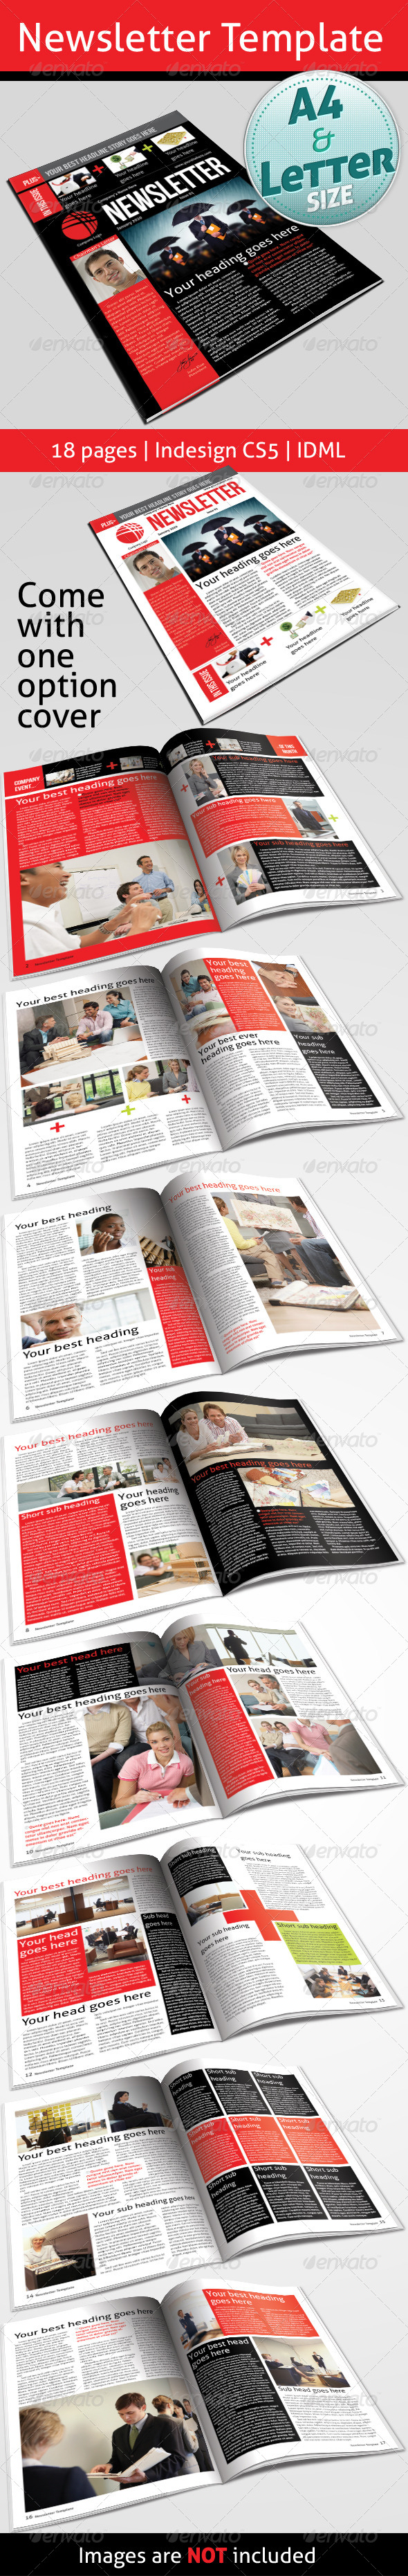 GraphicRiver Newsletter Template 5117221